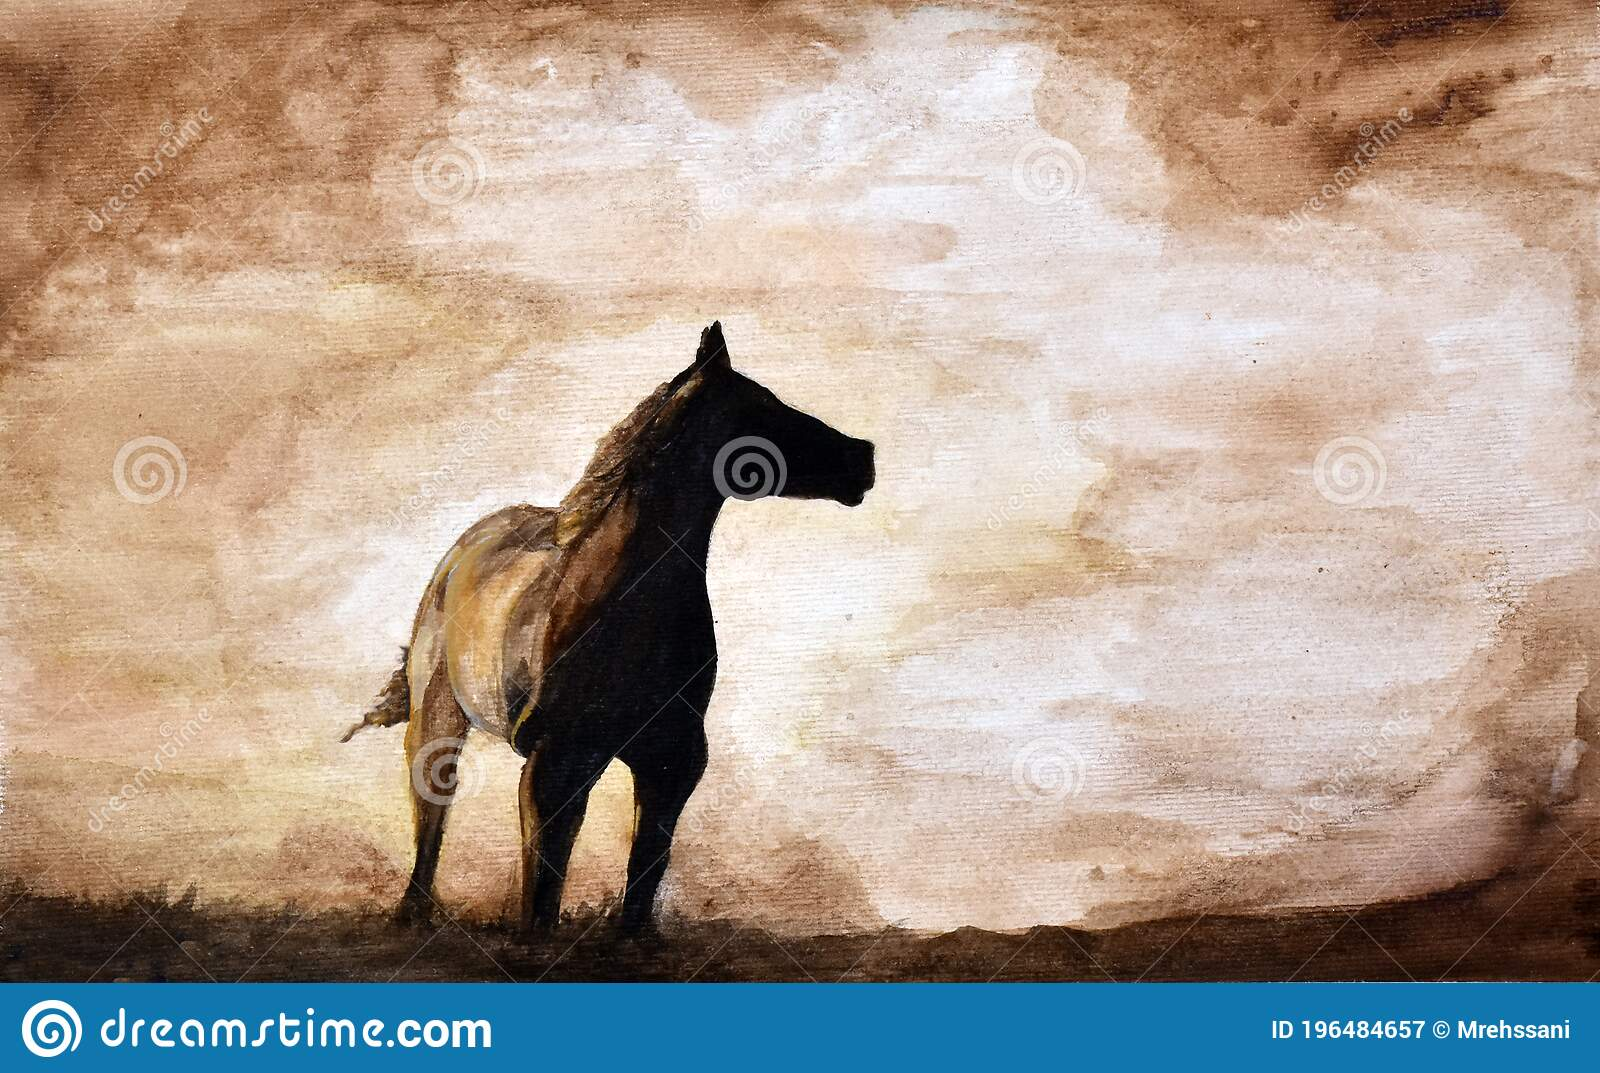 Abstract Horse Painting Stock Illustrations 1 401 Abstract Horse Painting Stock Illustrations Vectors Clipart Dreamstime